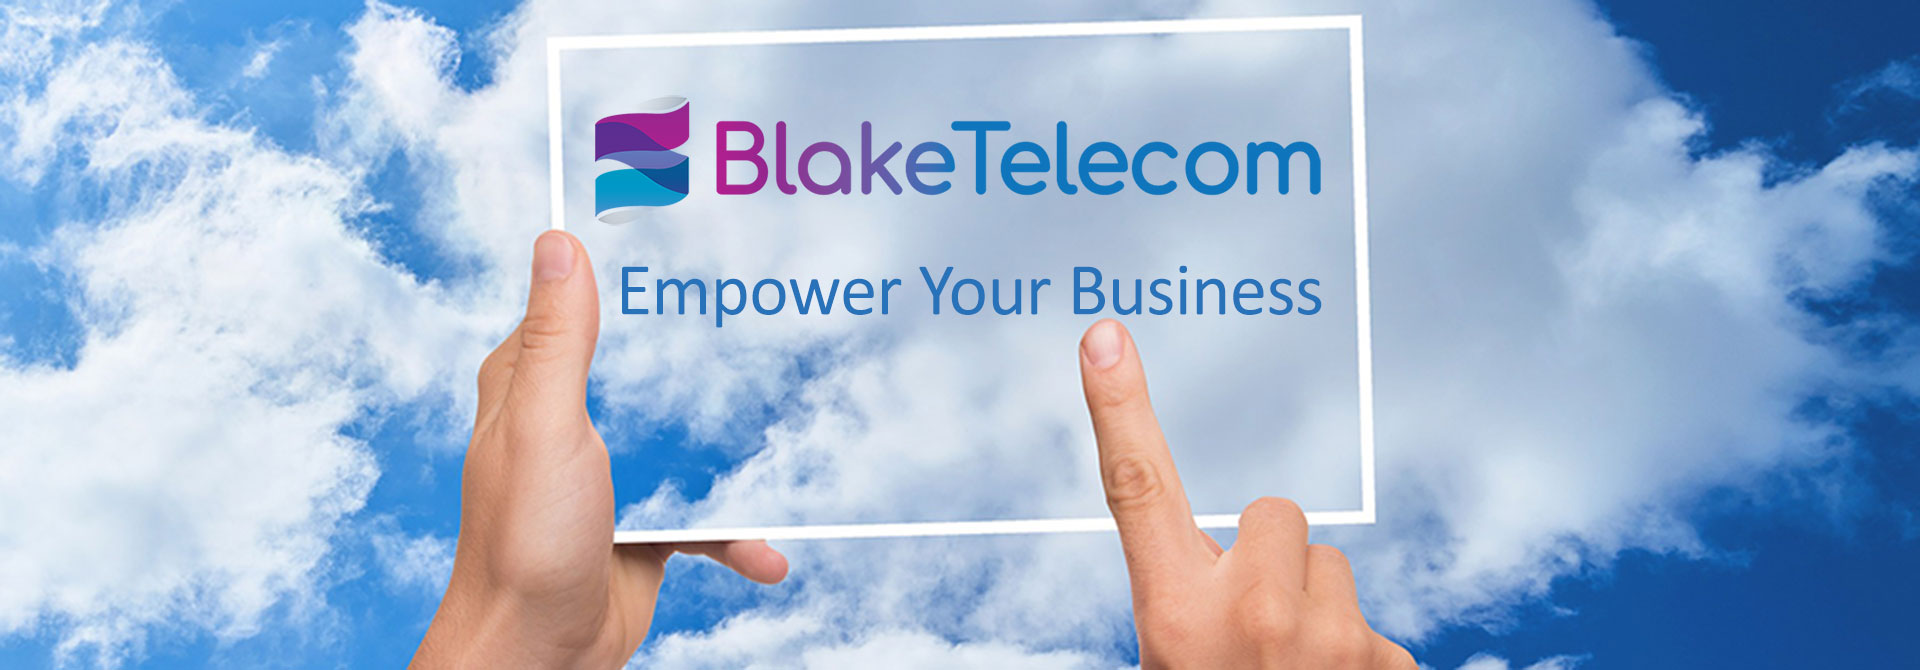 Blake Telecom Telephone systems and super fast internet